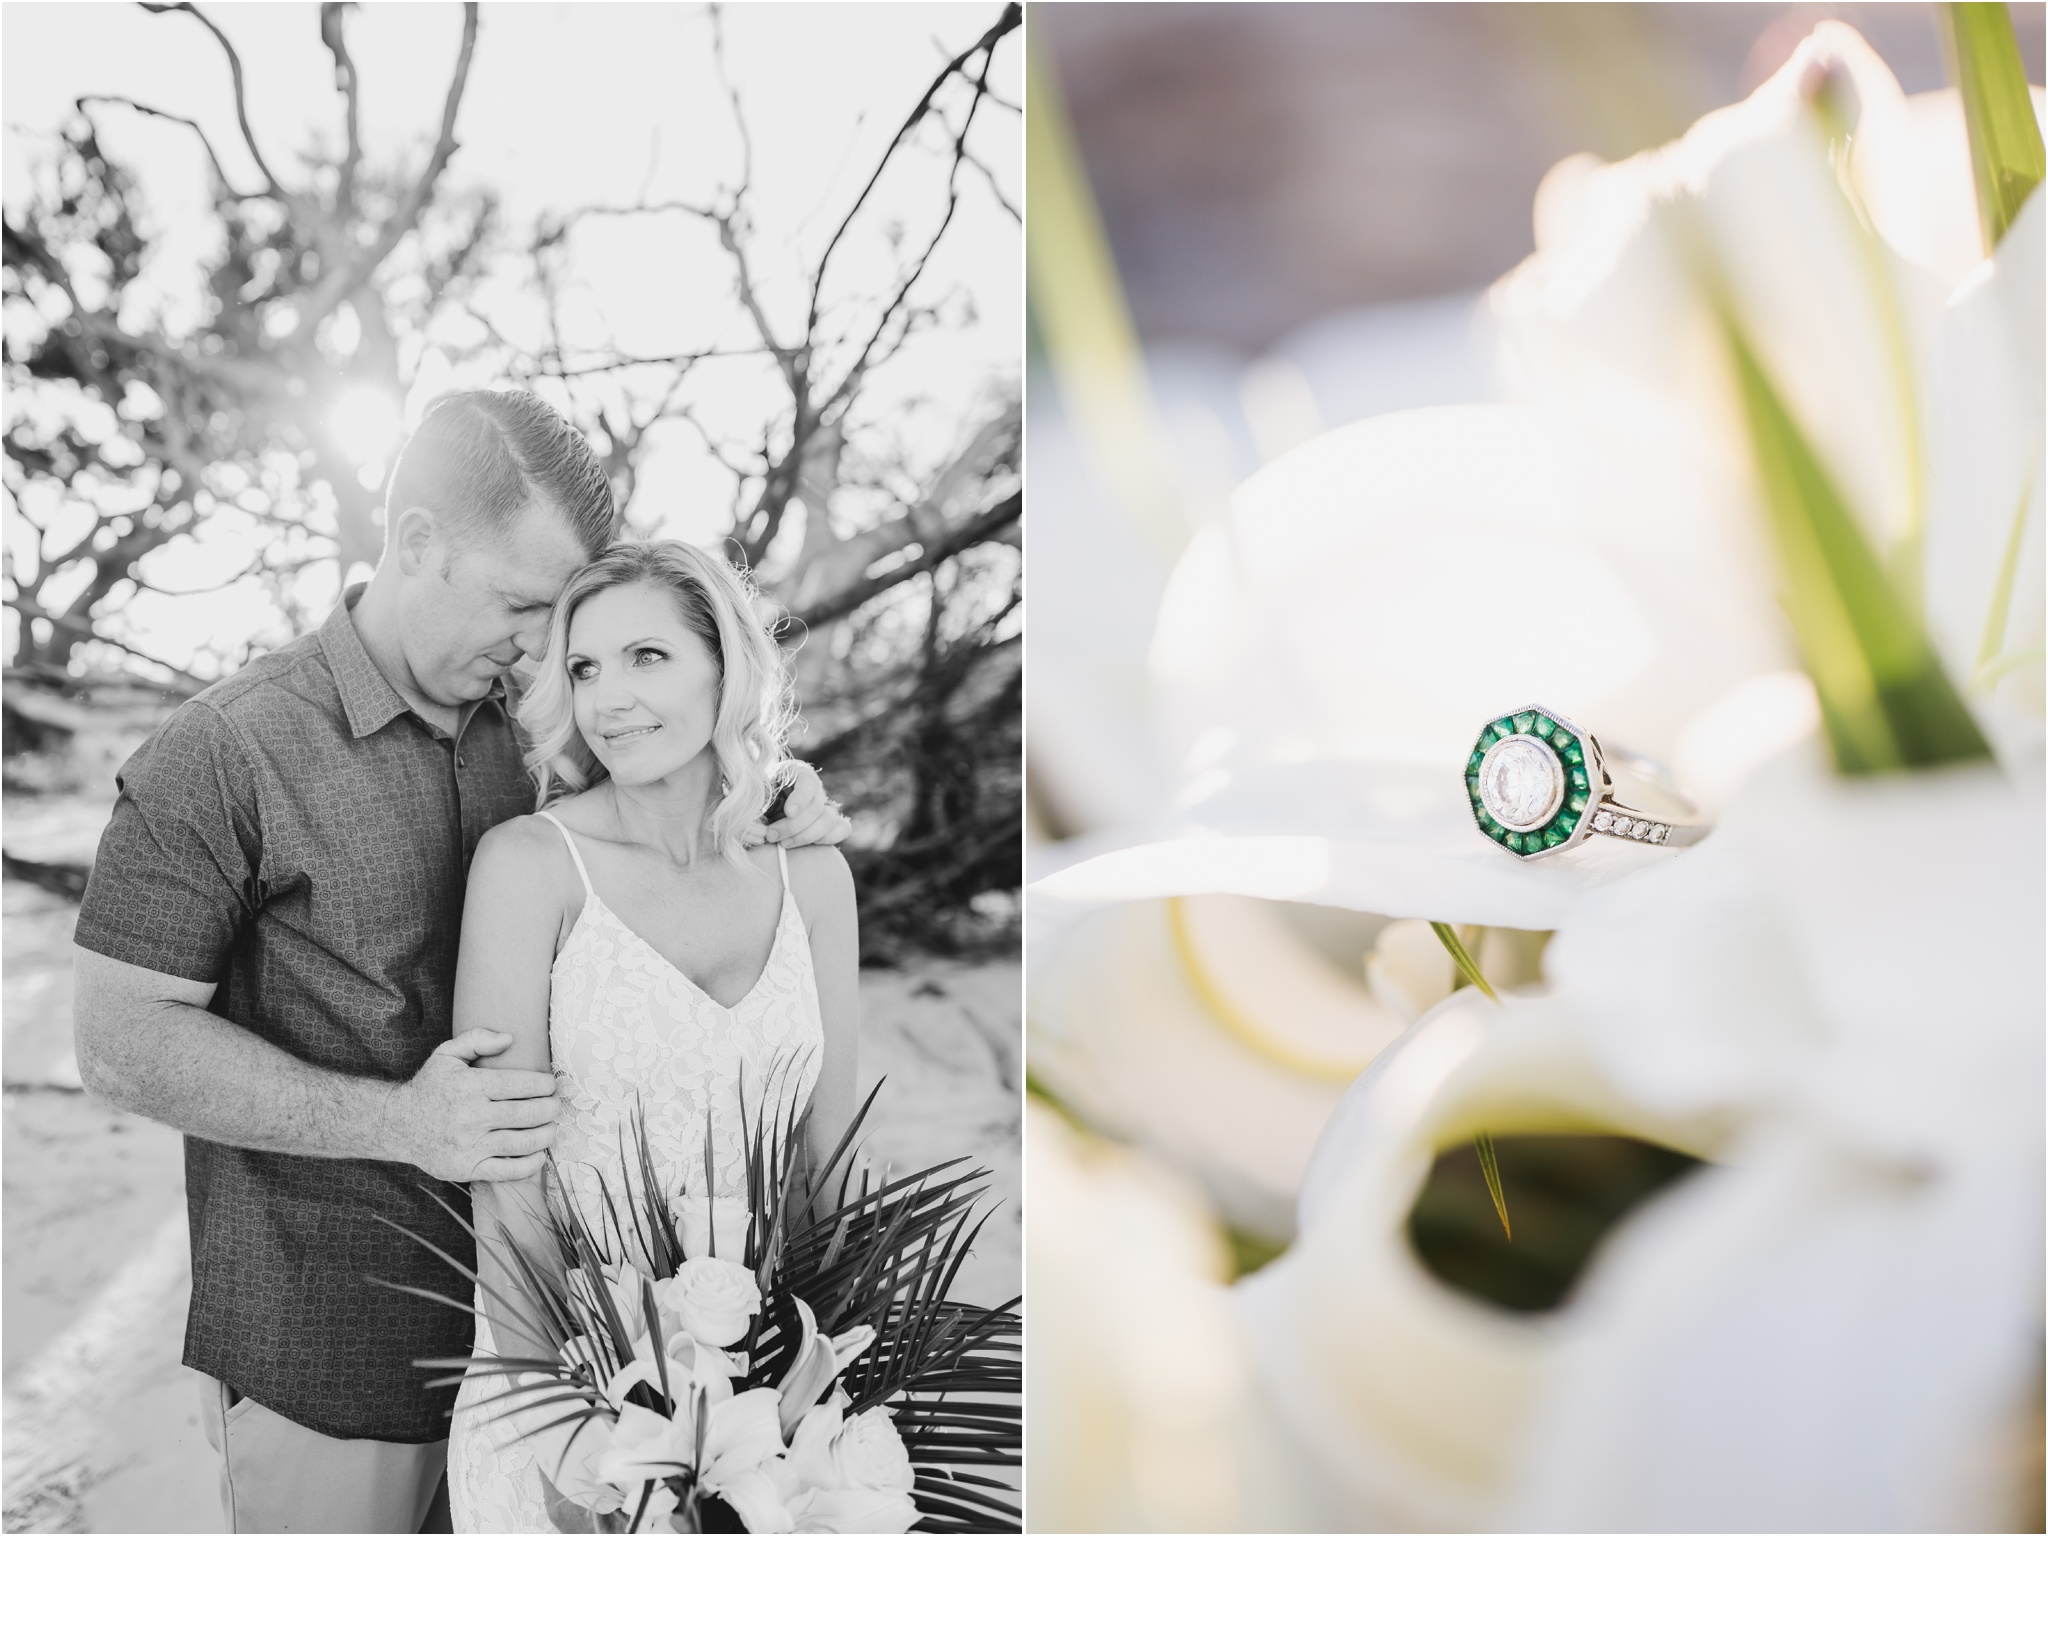 Rainey_Gregg_Photography_St._Simons_Island_Georgia_California_Wedding_Portrait_Photography_1581.jpg